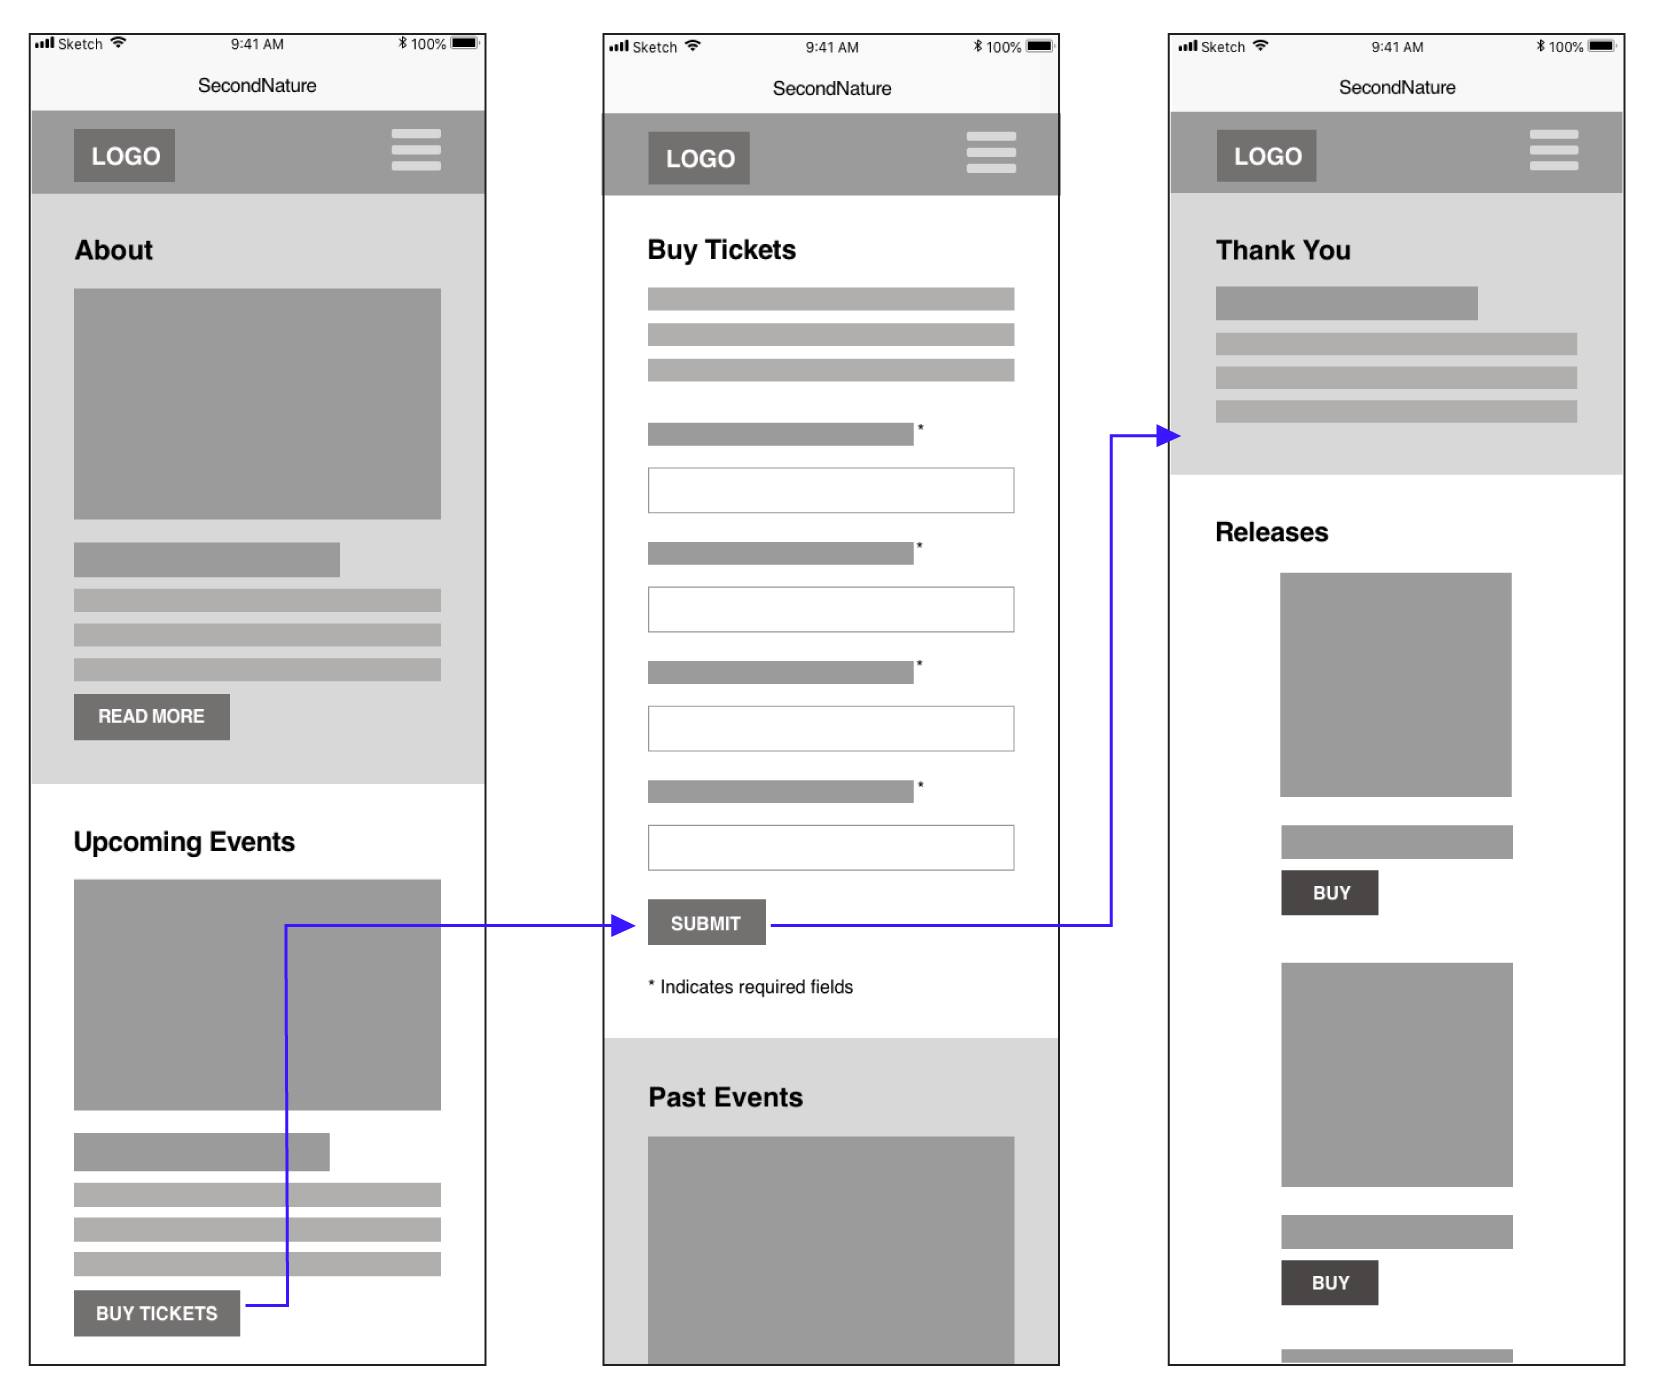 Revised-wireframes-3-5.png